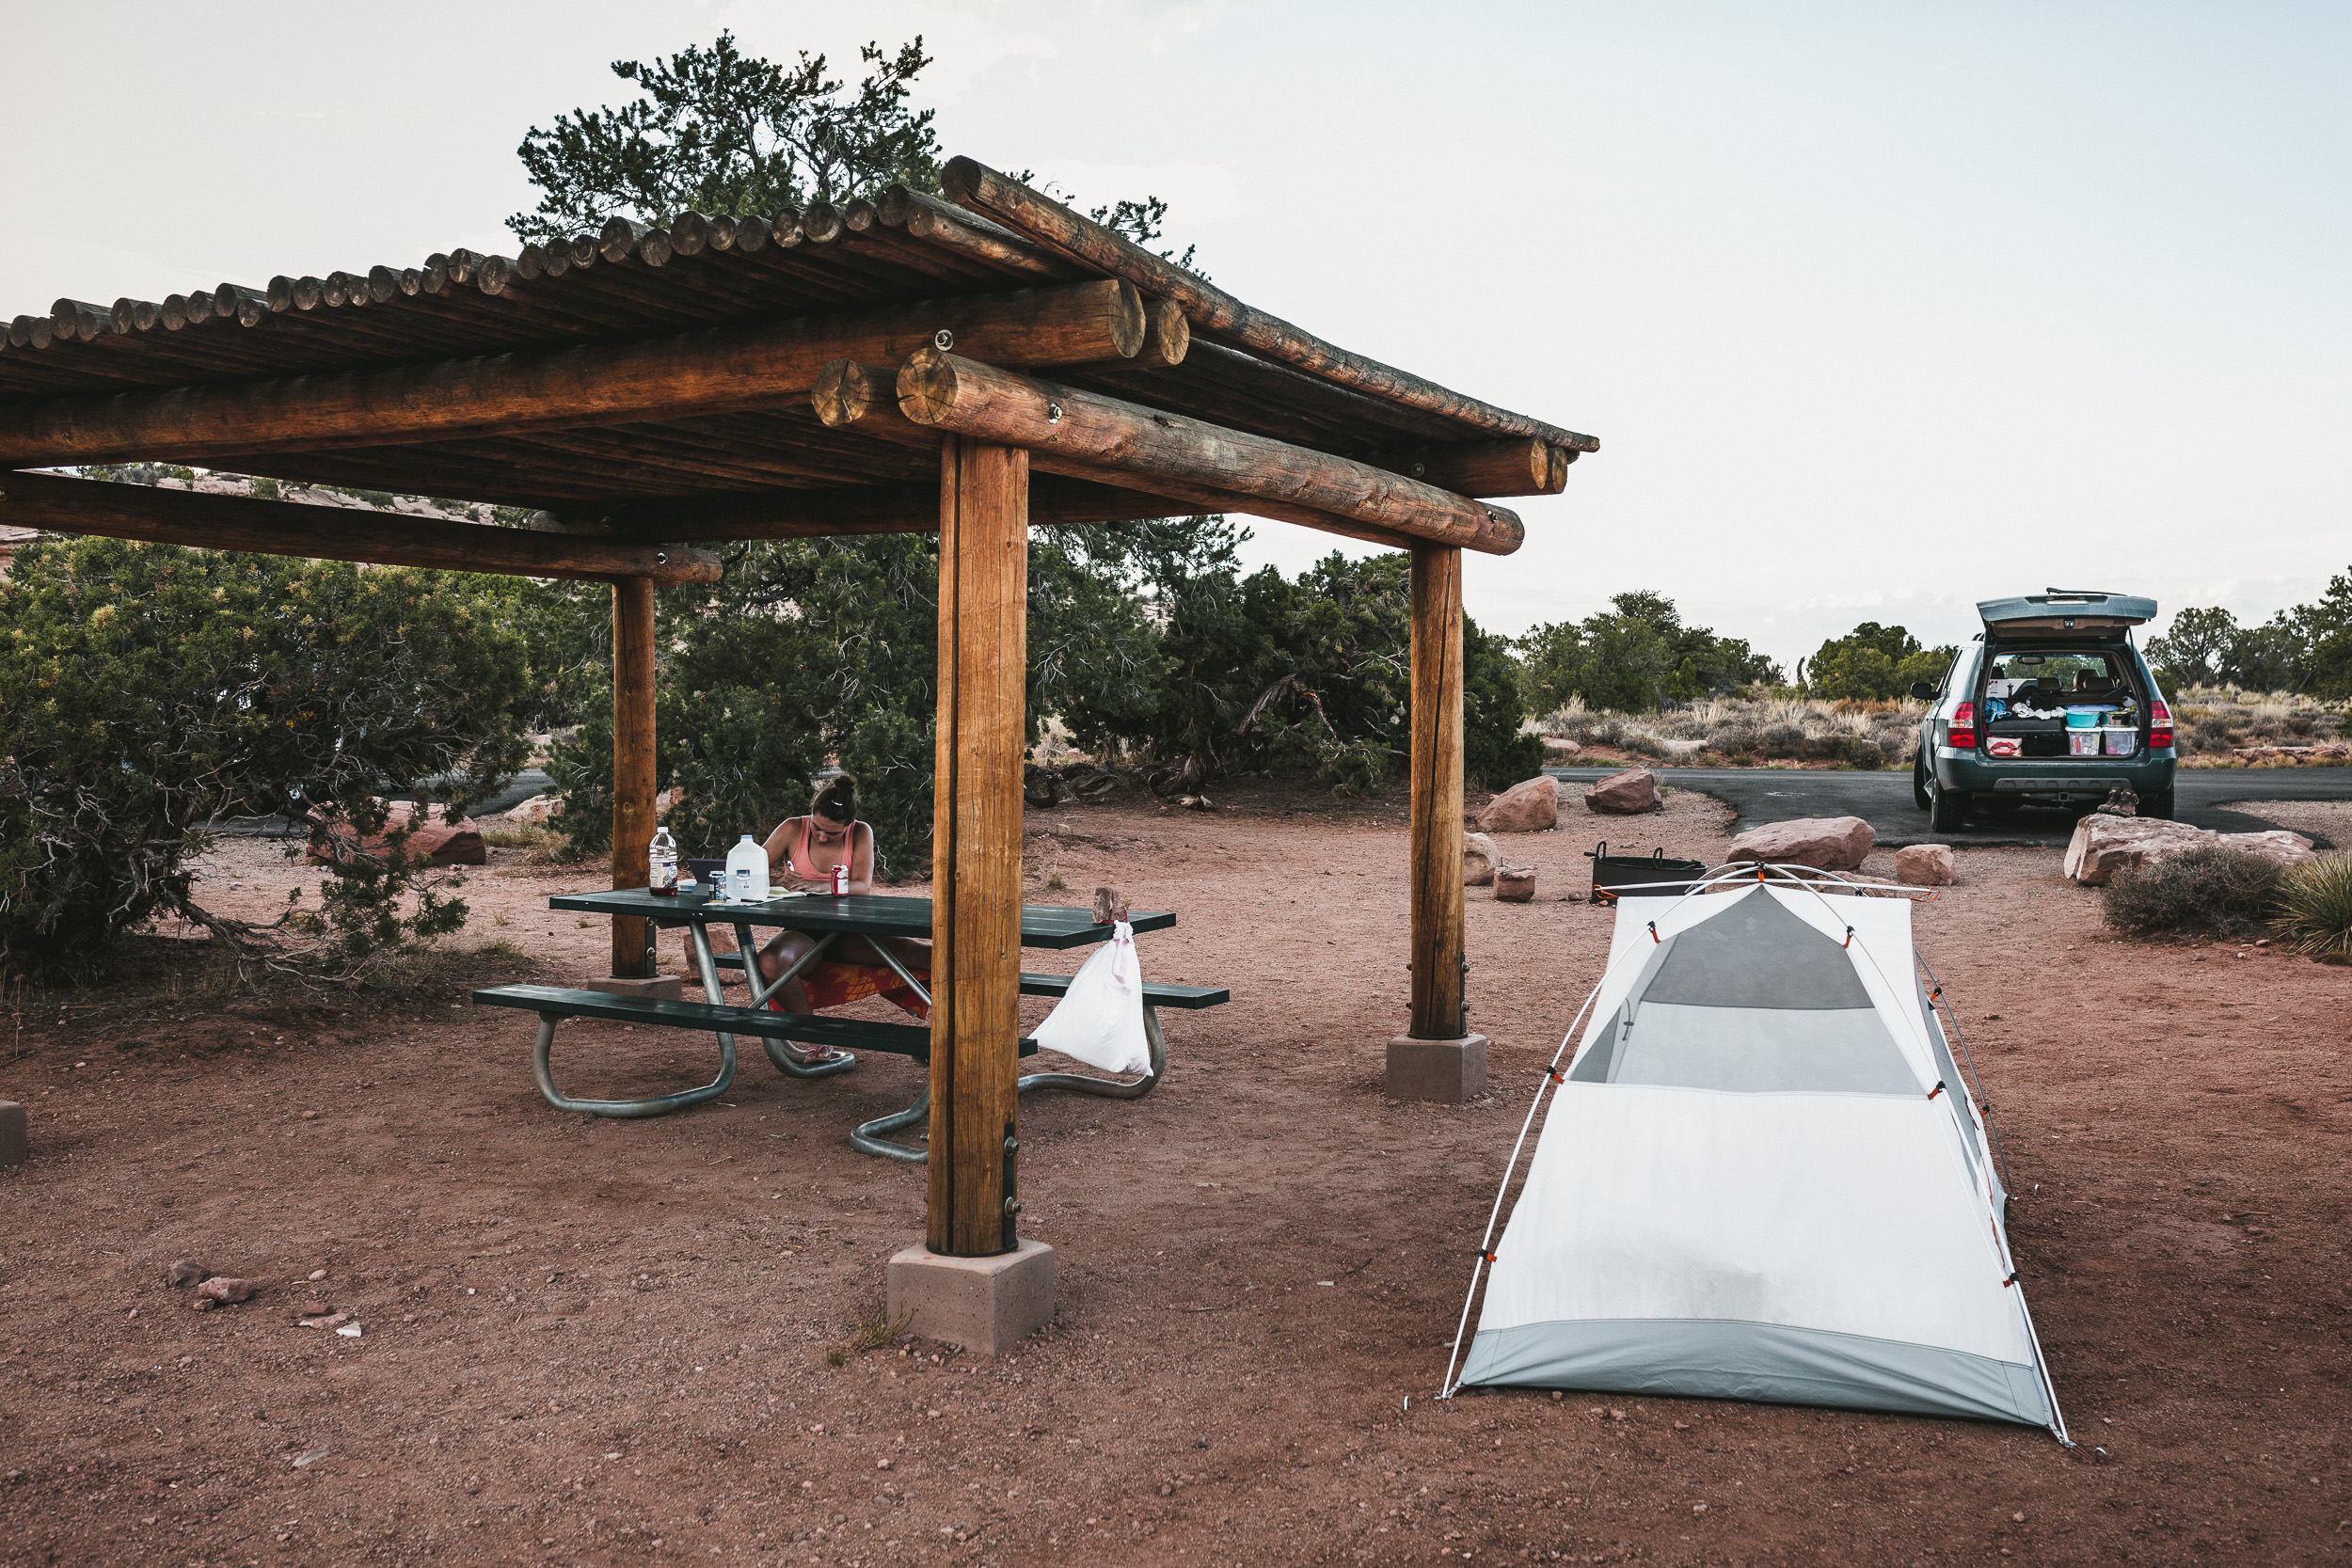 Campground im Canyonland NP